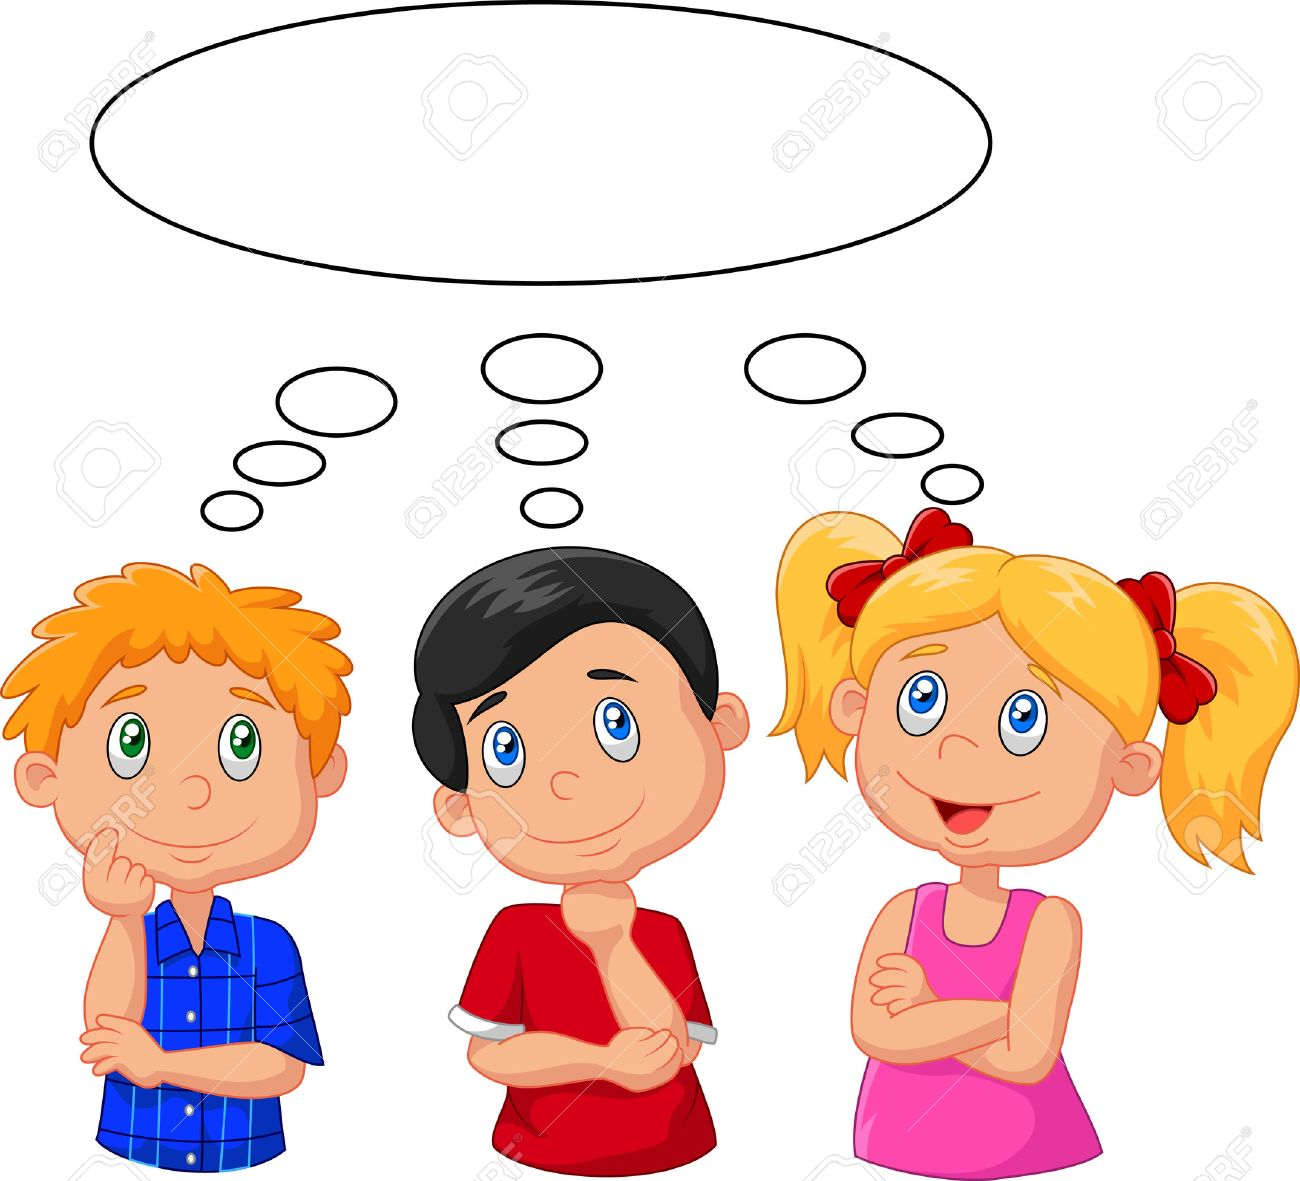 Cartoon Kids Thinking With White Bubble 757339 Png Images Pngio